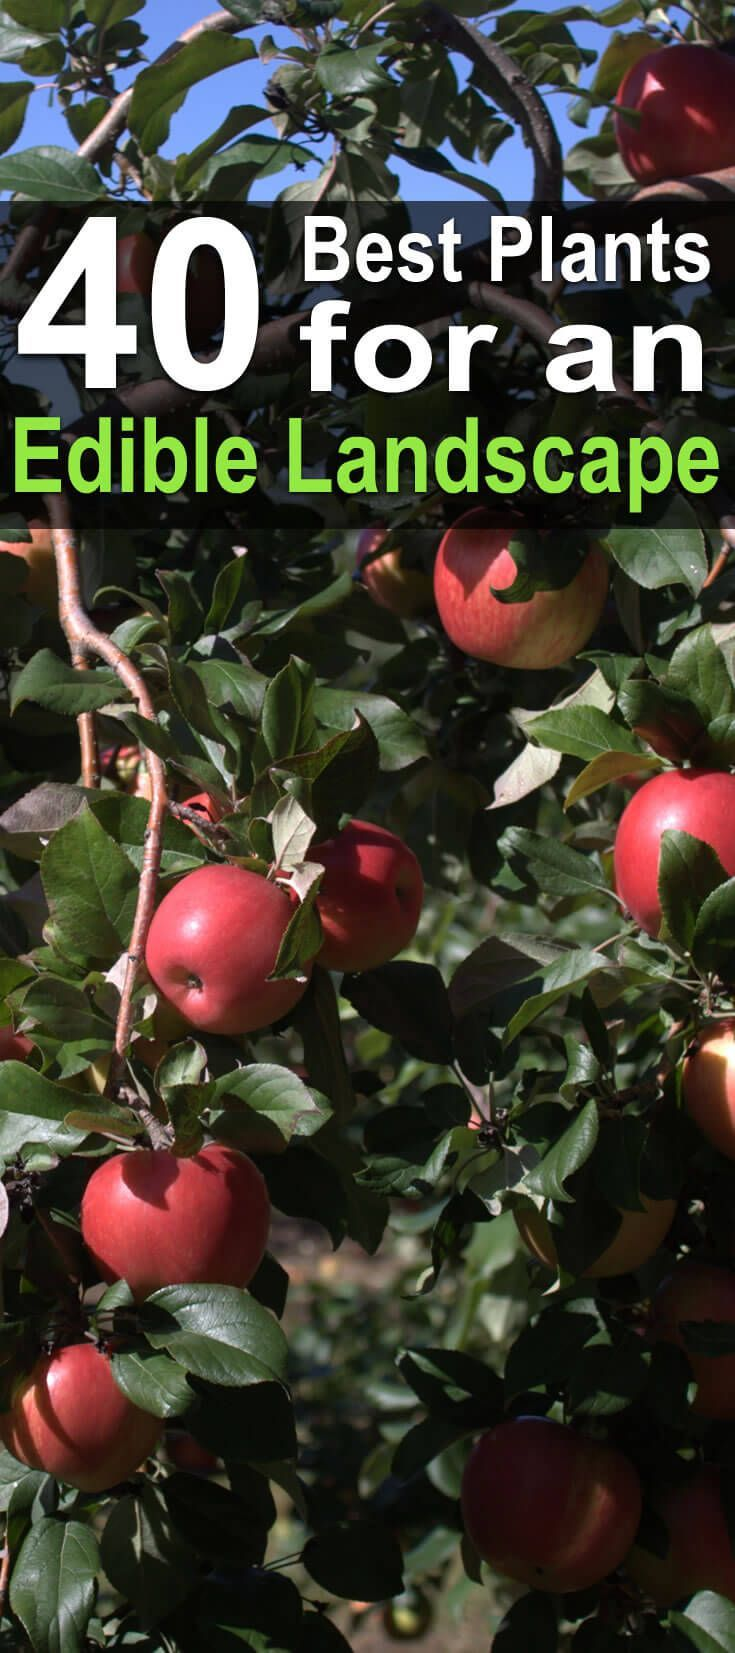 40 best plants for an edible landscape homesteads landscaping and